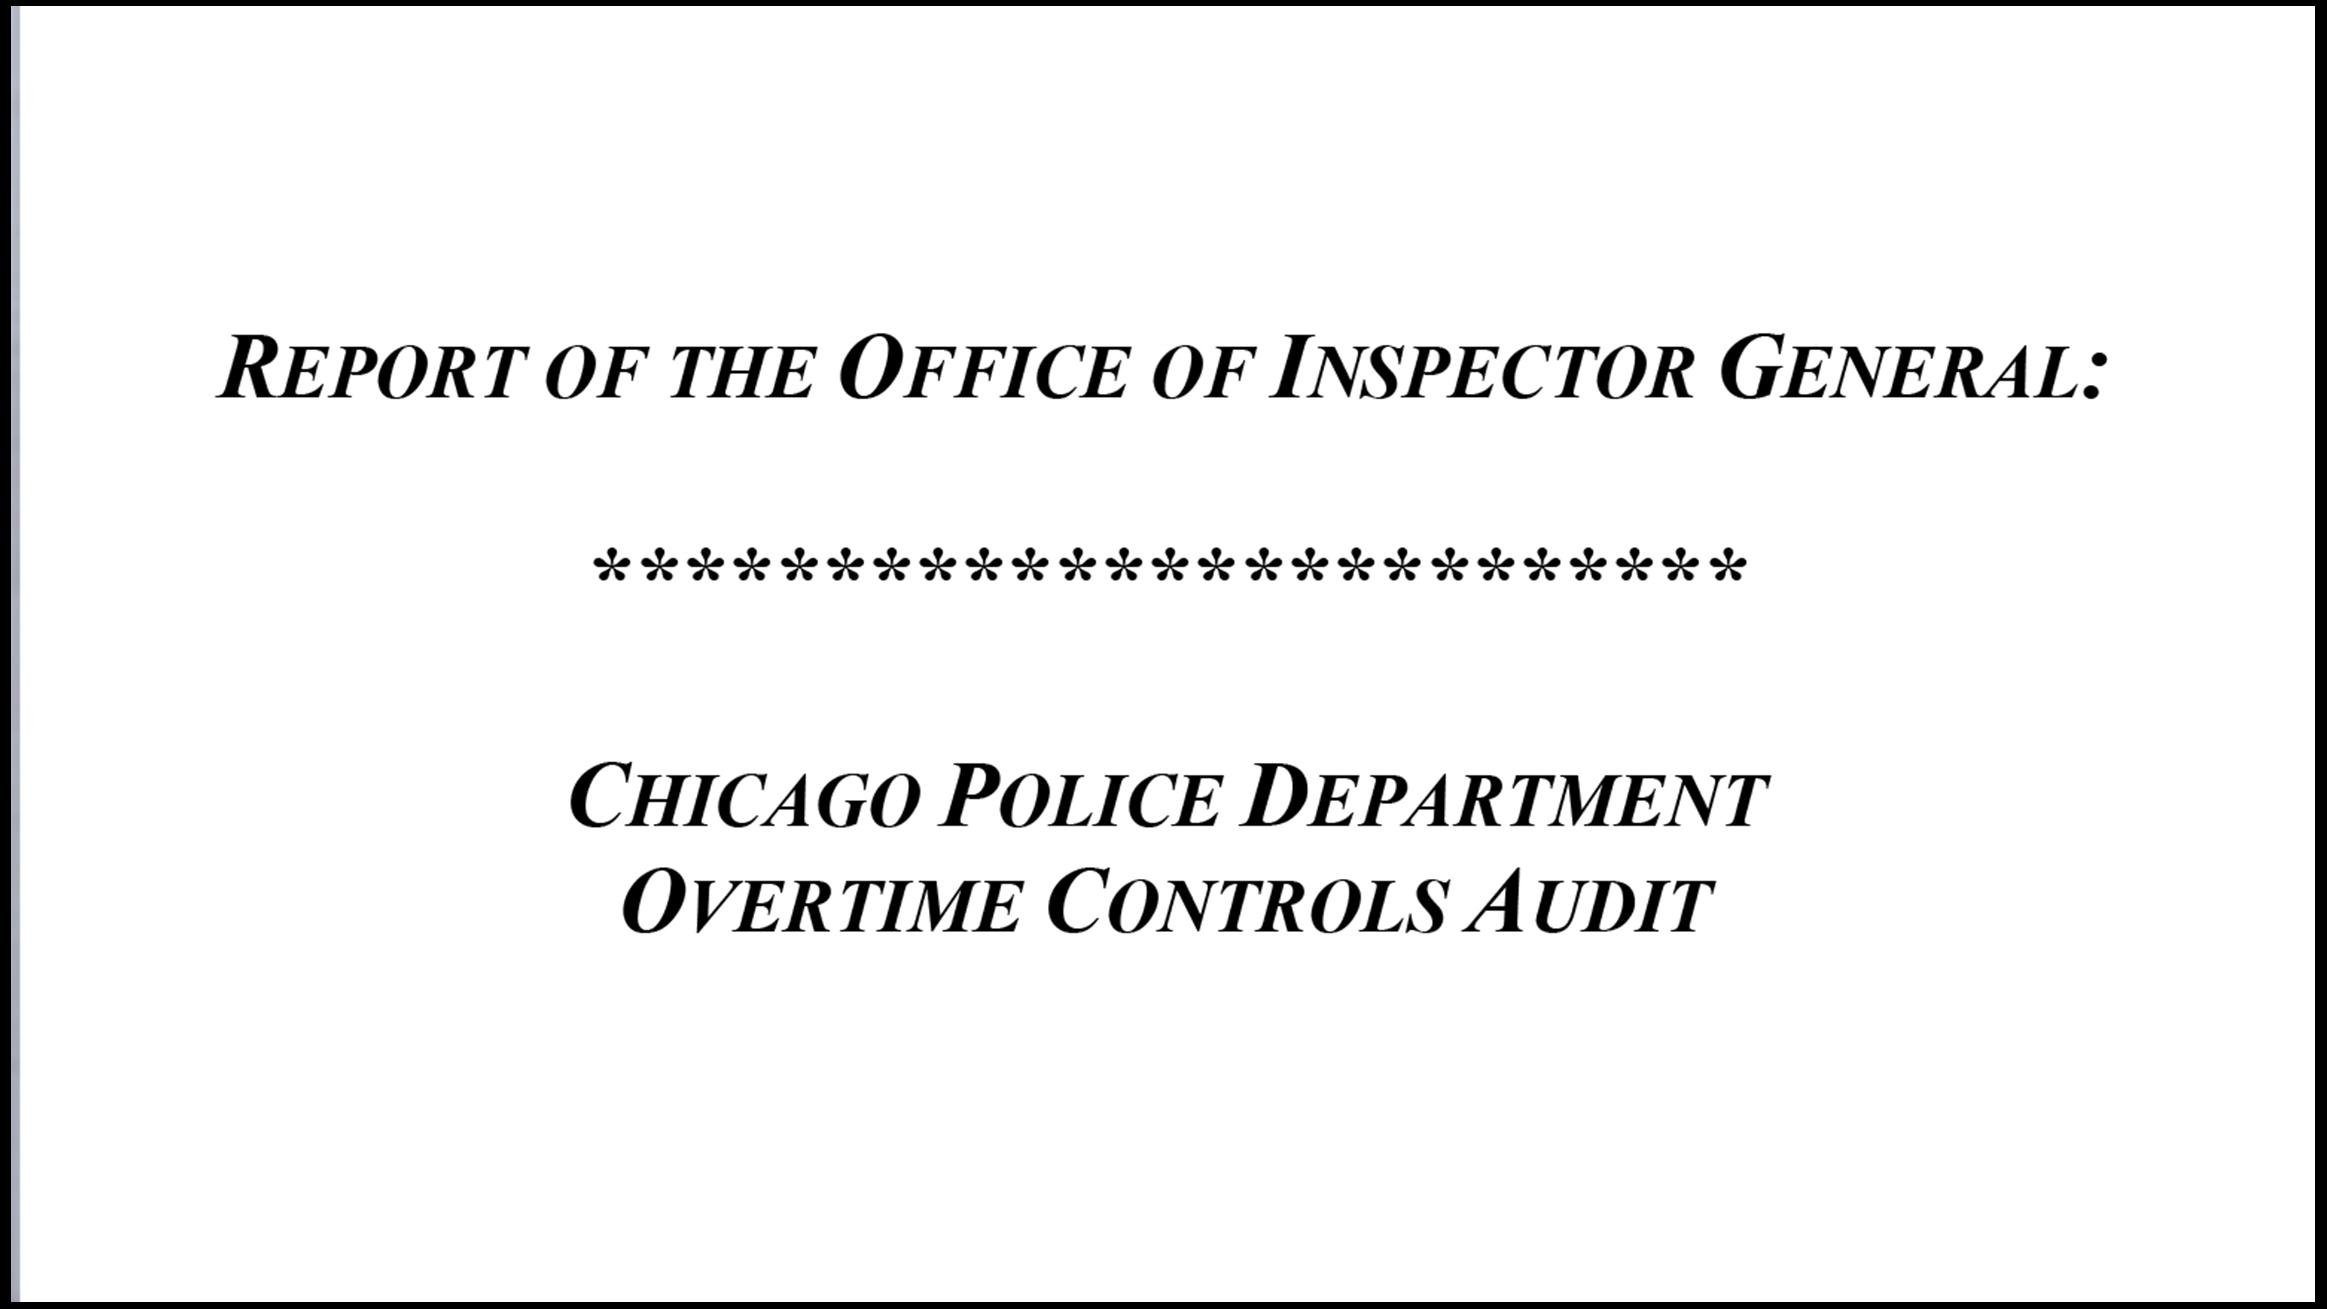 Document: Read the inspector general's report